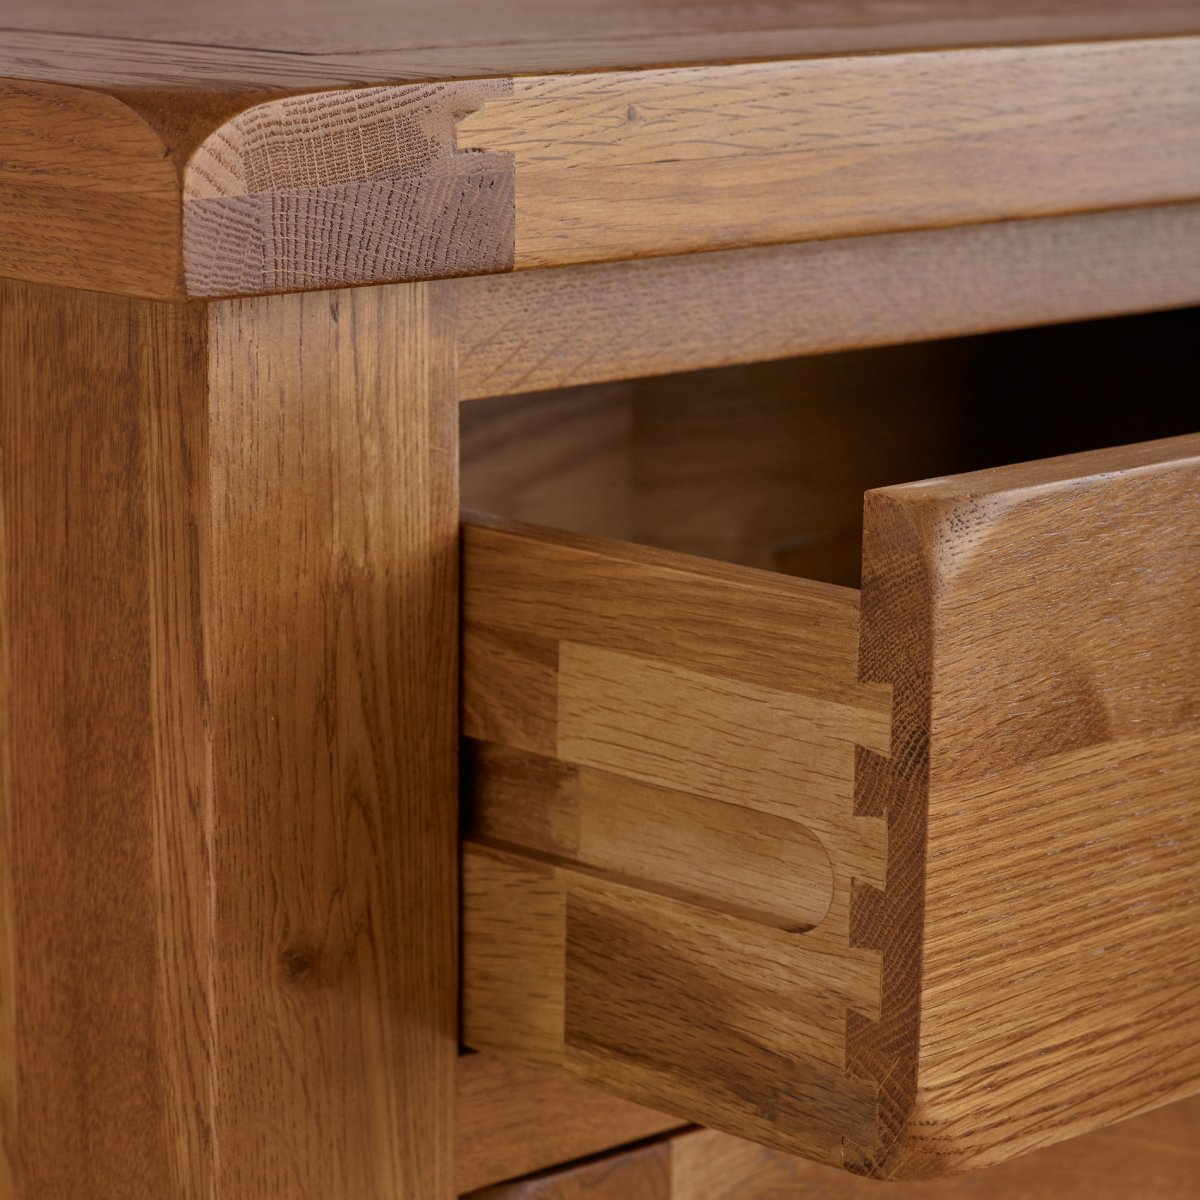 Furnuture: Original Rustic 3+4 Chest Of Drawers In Solid Oak